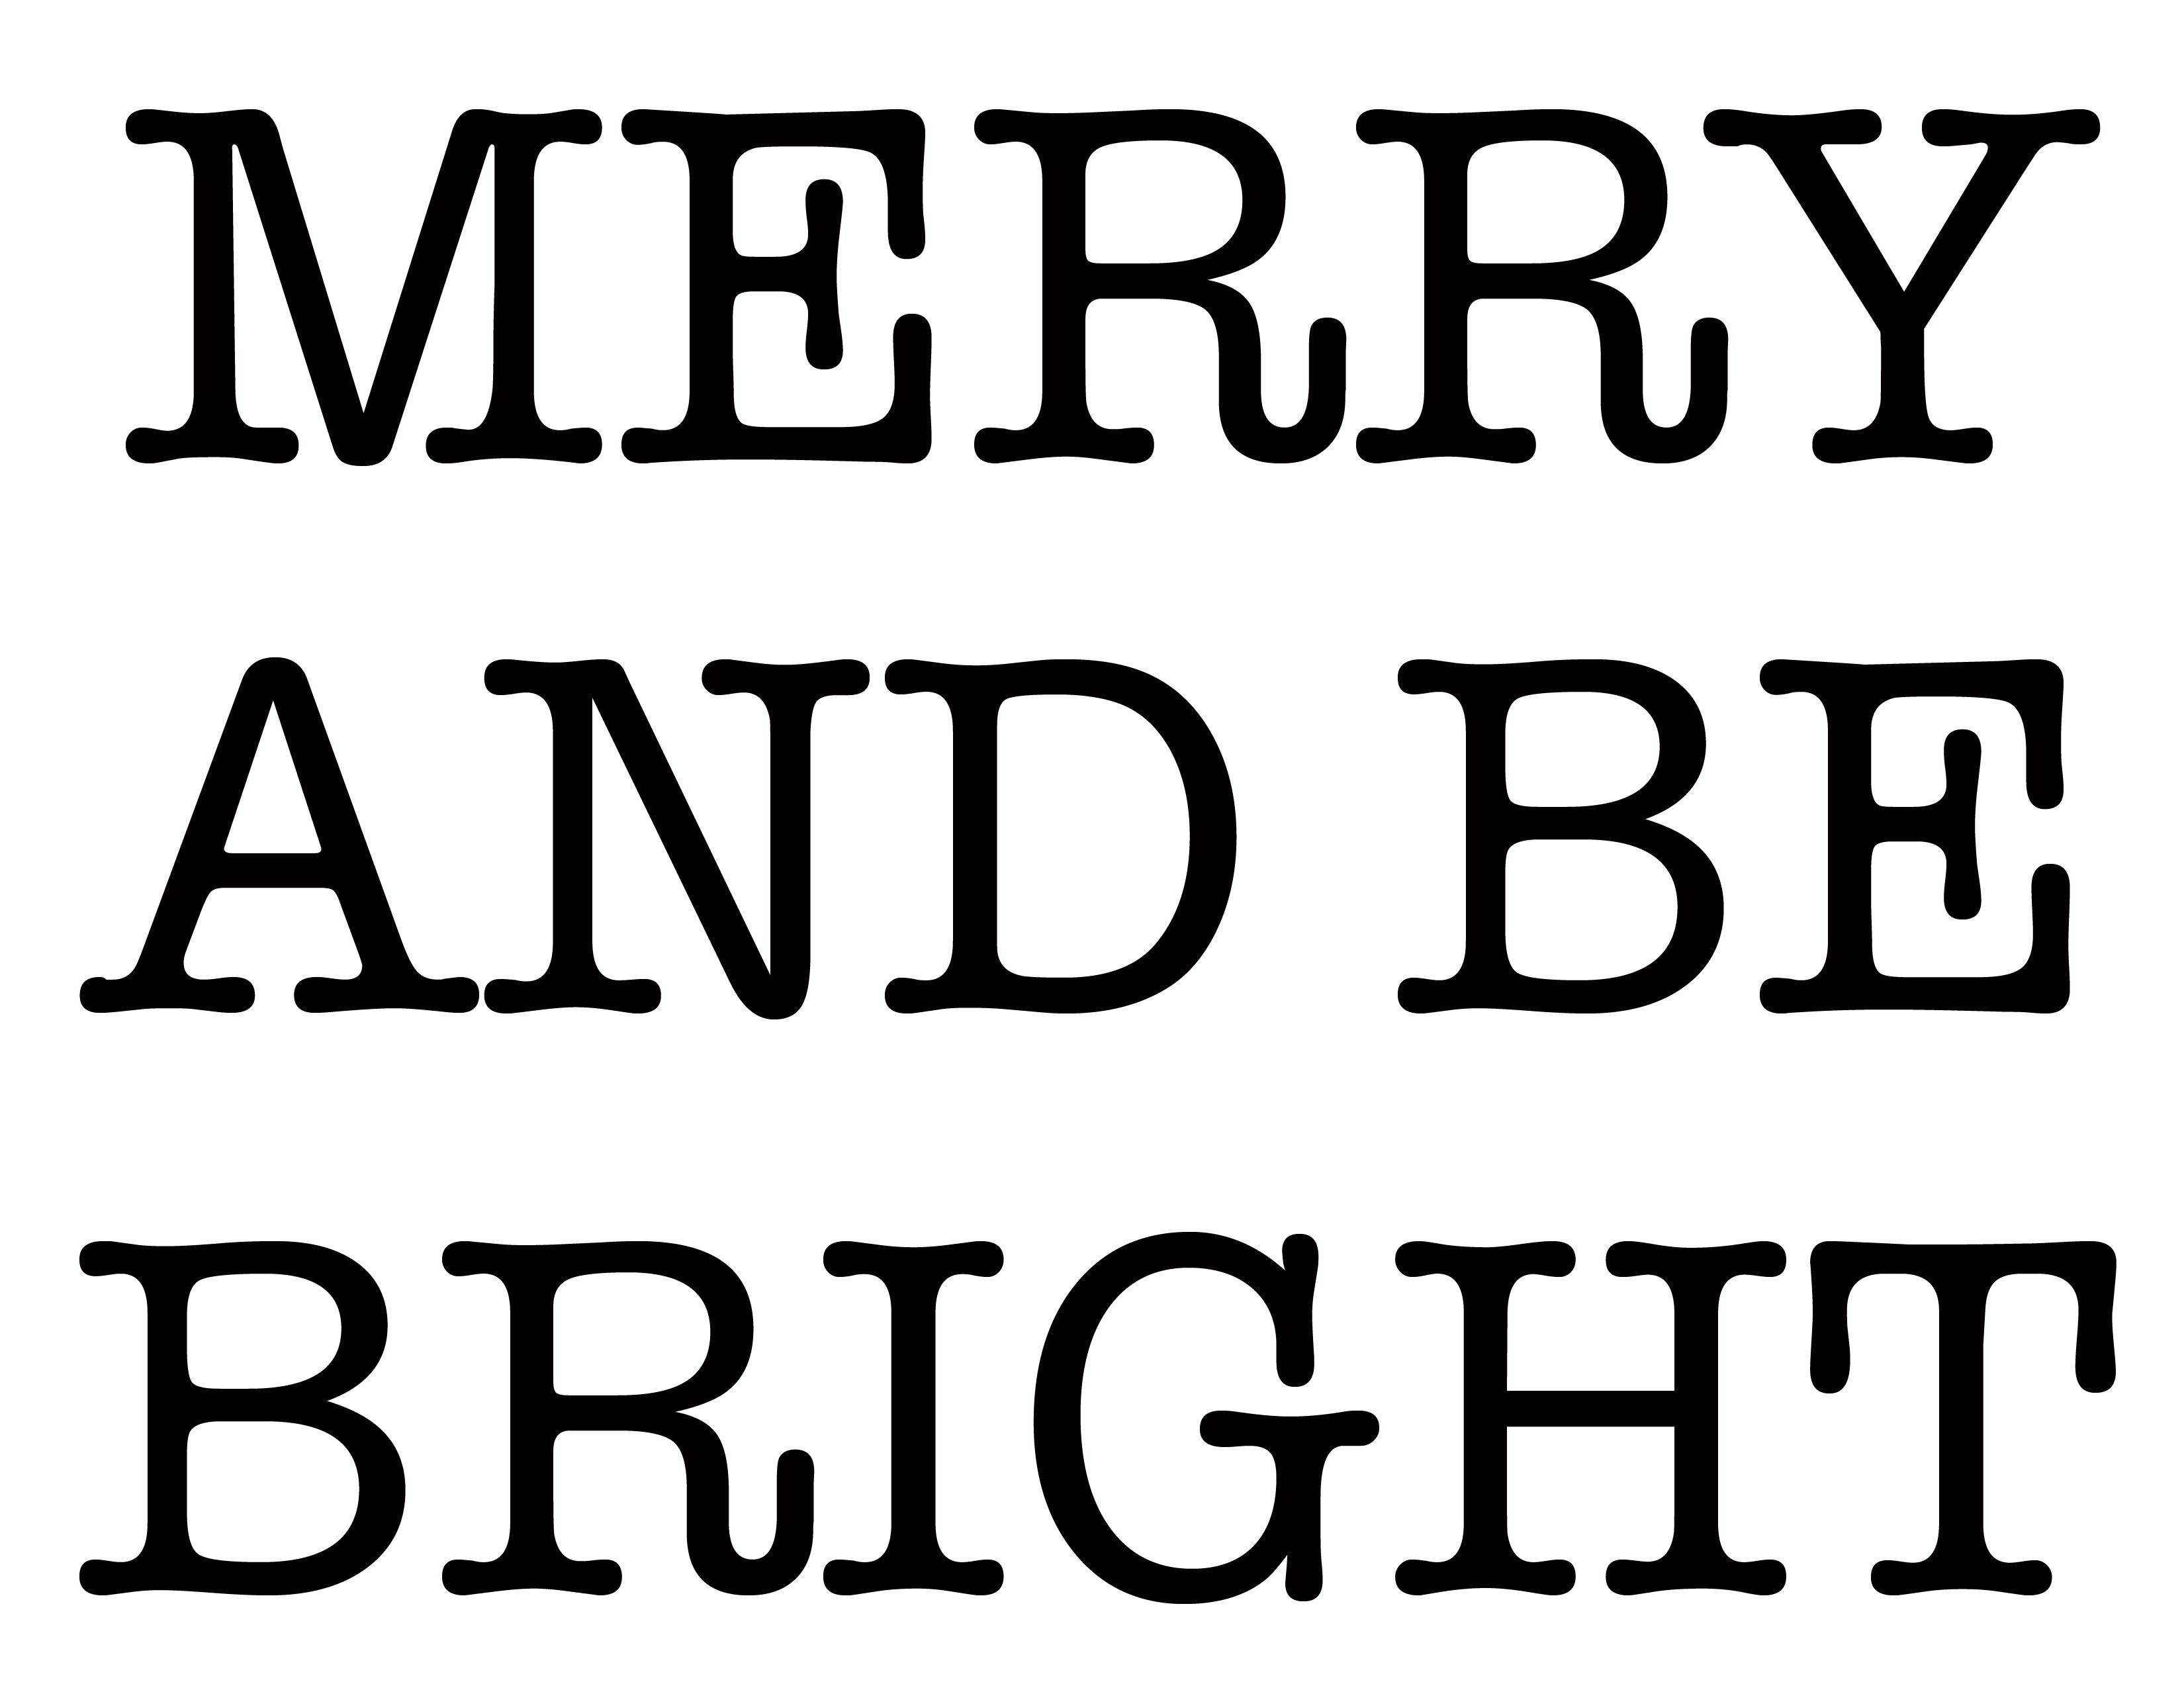 Quot Merry And Bright Quot Wooden Slat Christmas Tree Project By